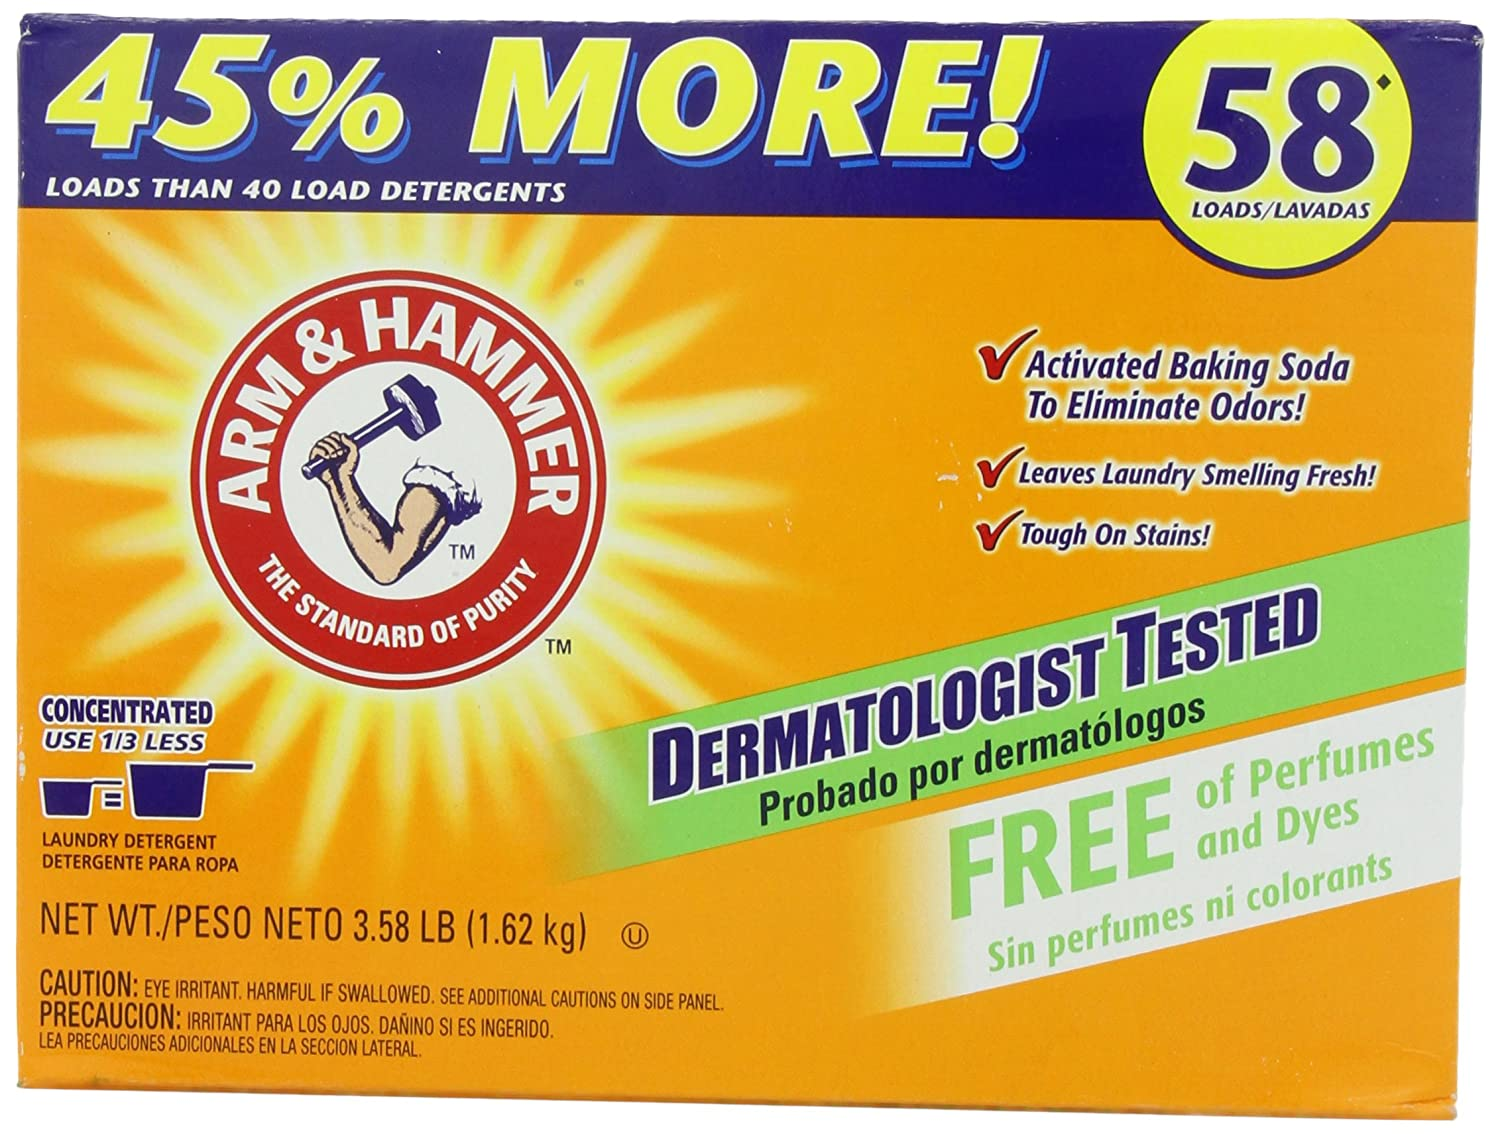 Is arm and hammer powder laundry detergent he - Amazon Com Arm Hammer Powder Laundry Detergent 58 Loads Free Of Perfumes And Dyes 3 58 Pounds Health Personal Care